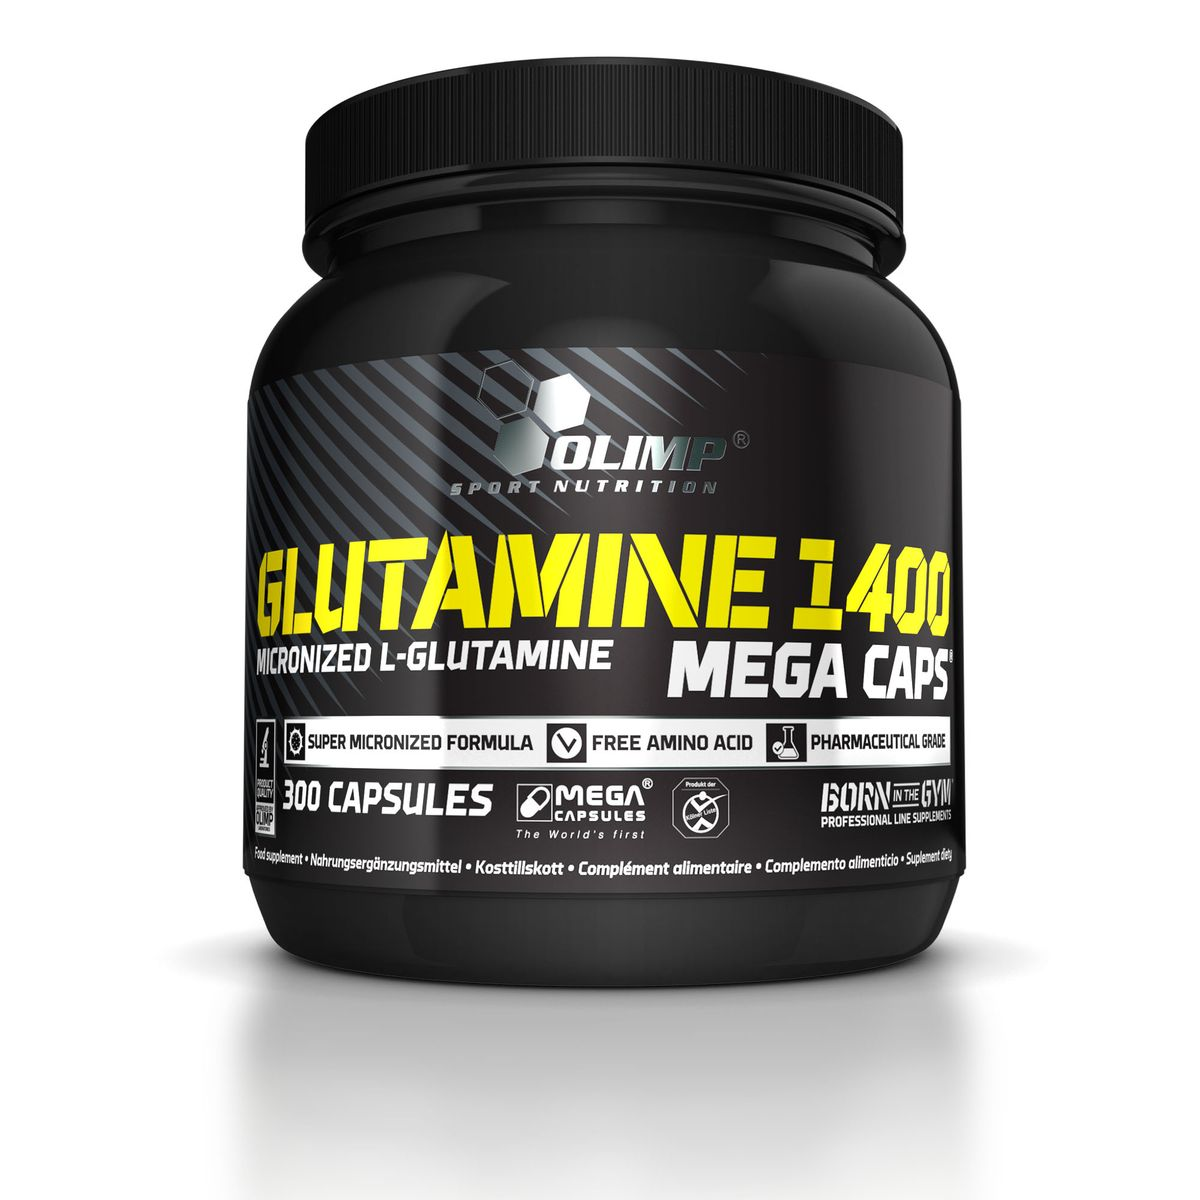 Глютамин Olimp Sport Nutrition 1400 Mega Caps, 300 капсул ultra mens sport multivitamin formula как принимать